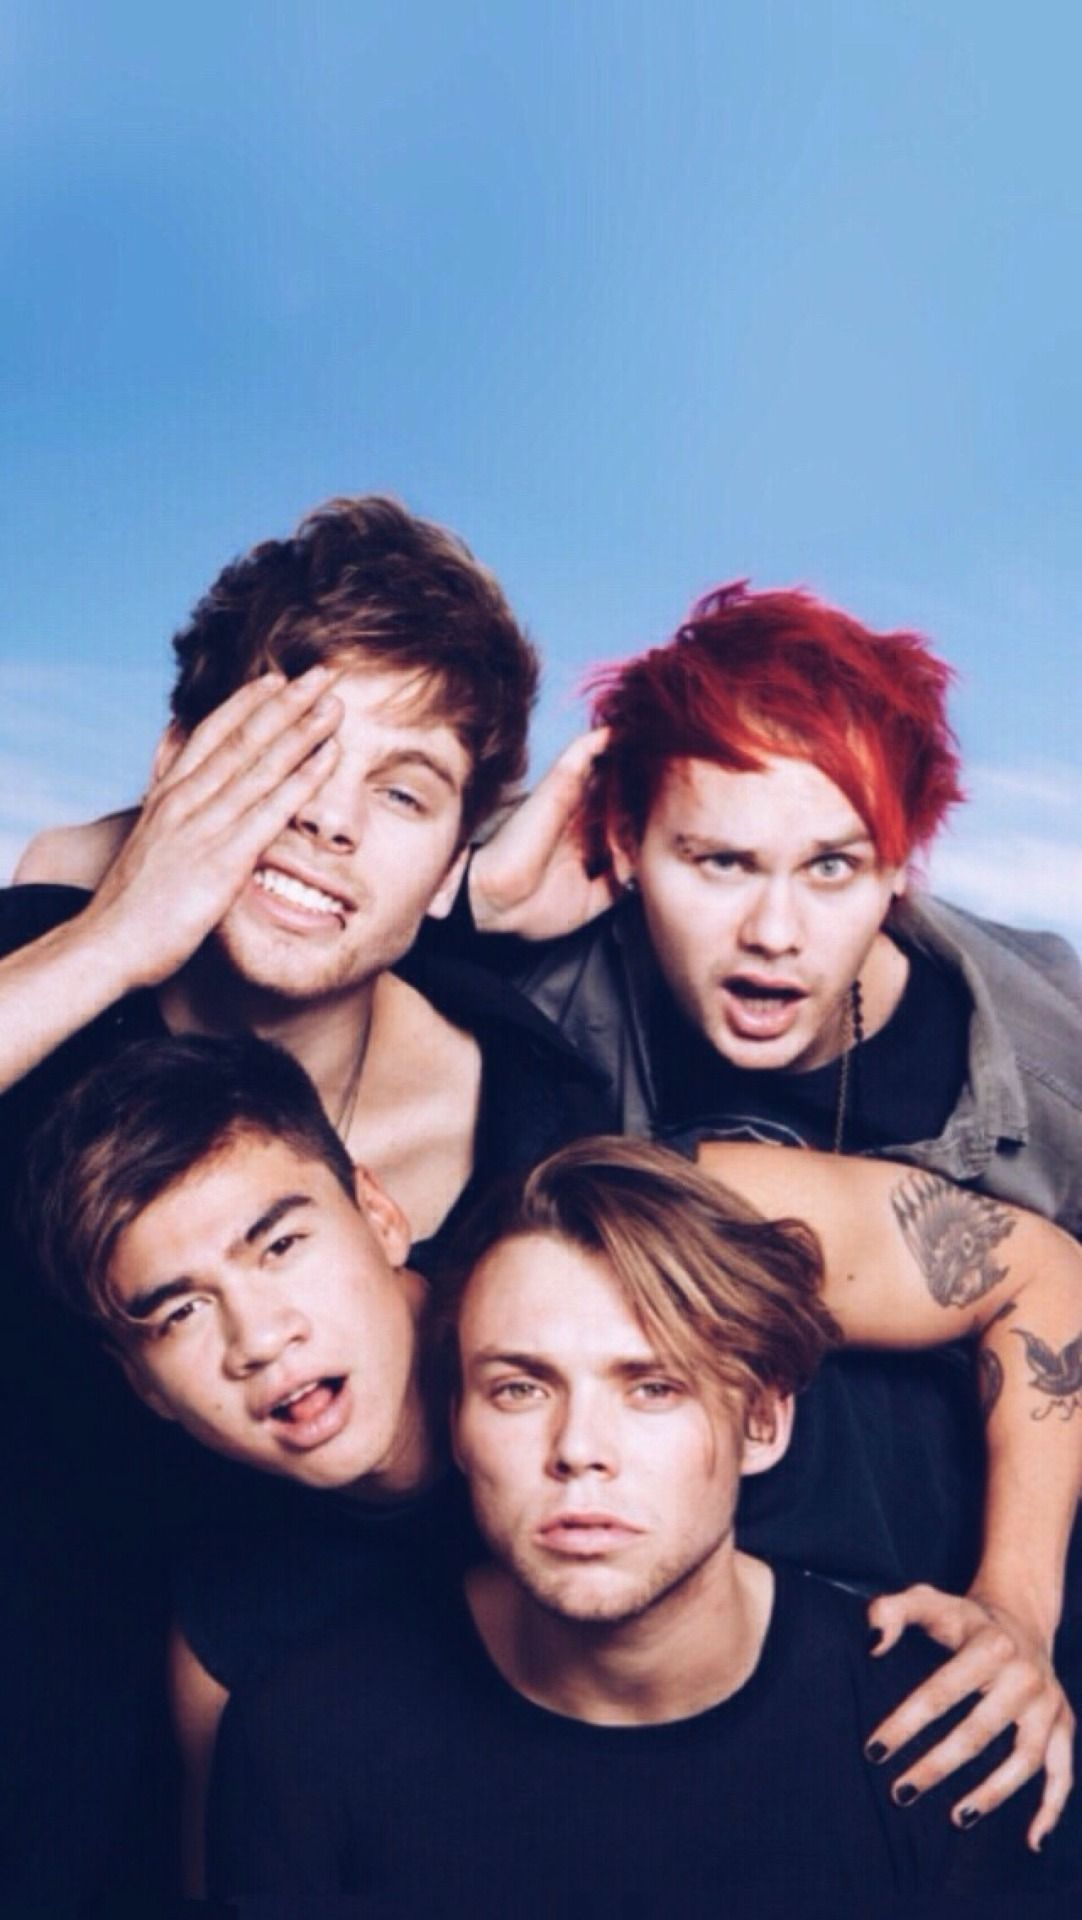 5 seconds of summer wallpaper | Wallpaper | 5sos wallpaper, 5SOS, Iphone wallpaper 5sos